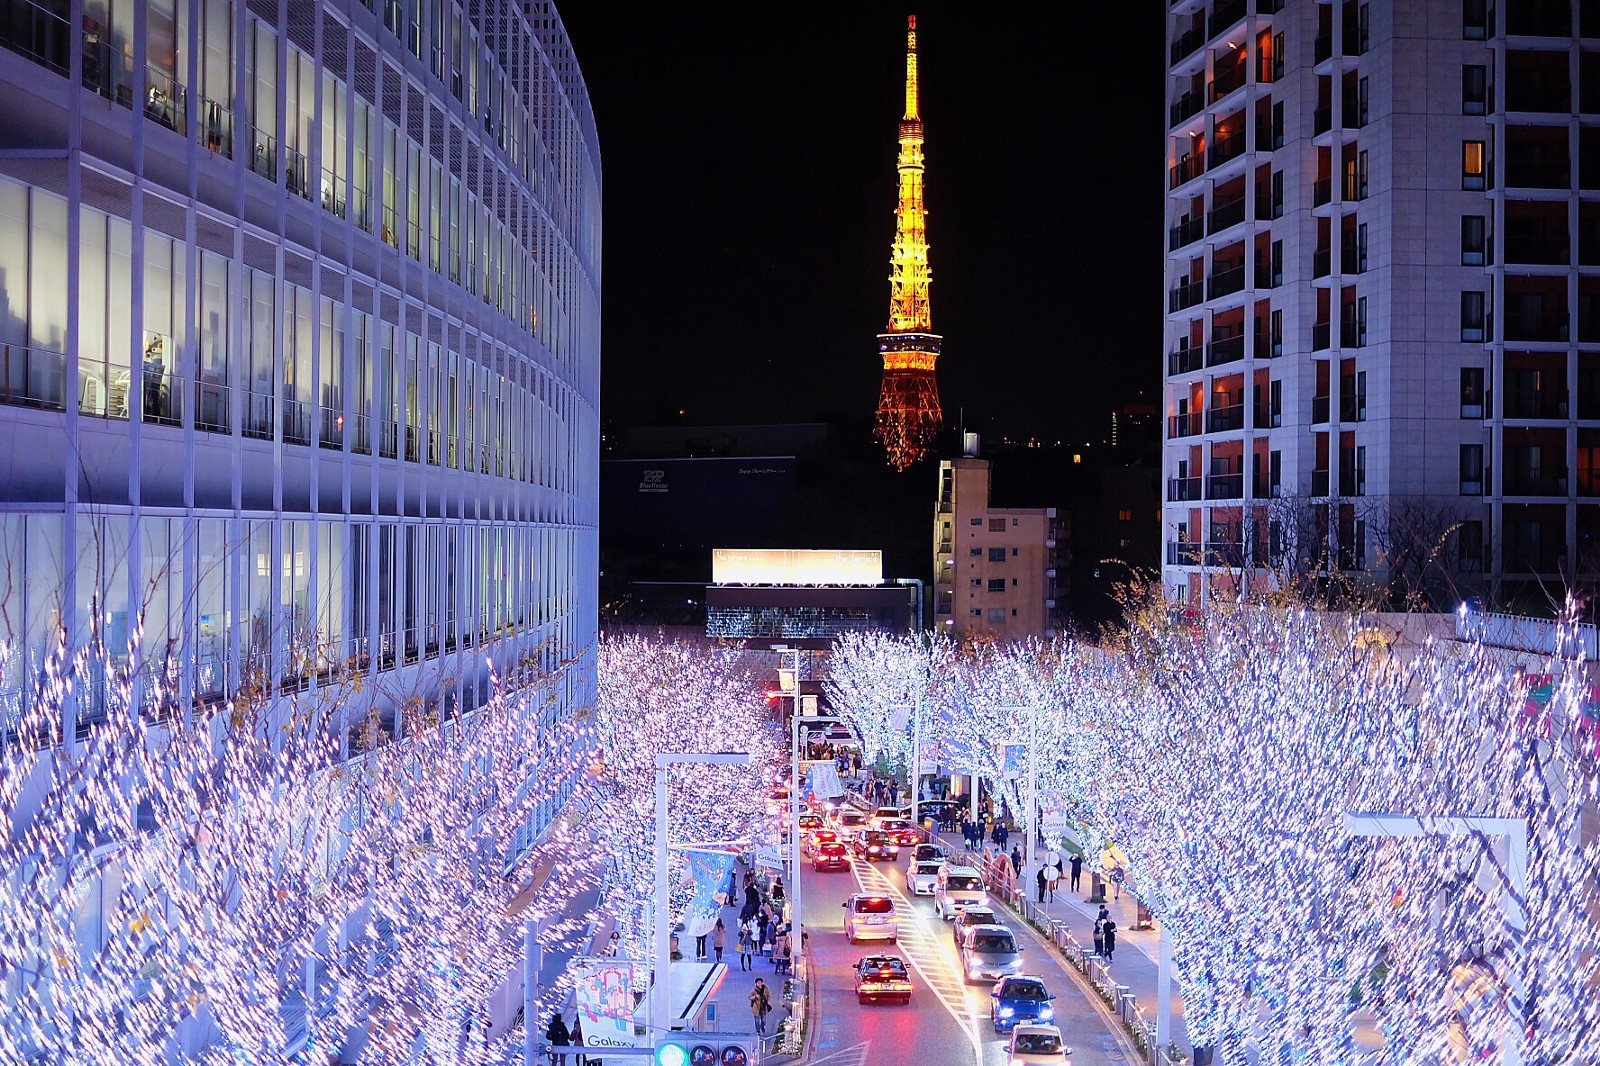 Roppongi Hills Winter Illumination 2019